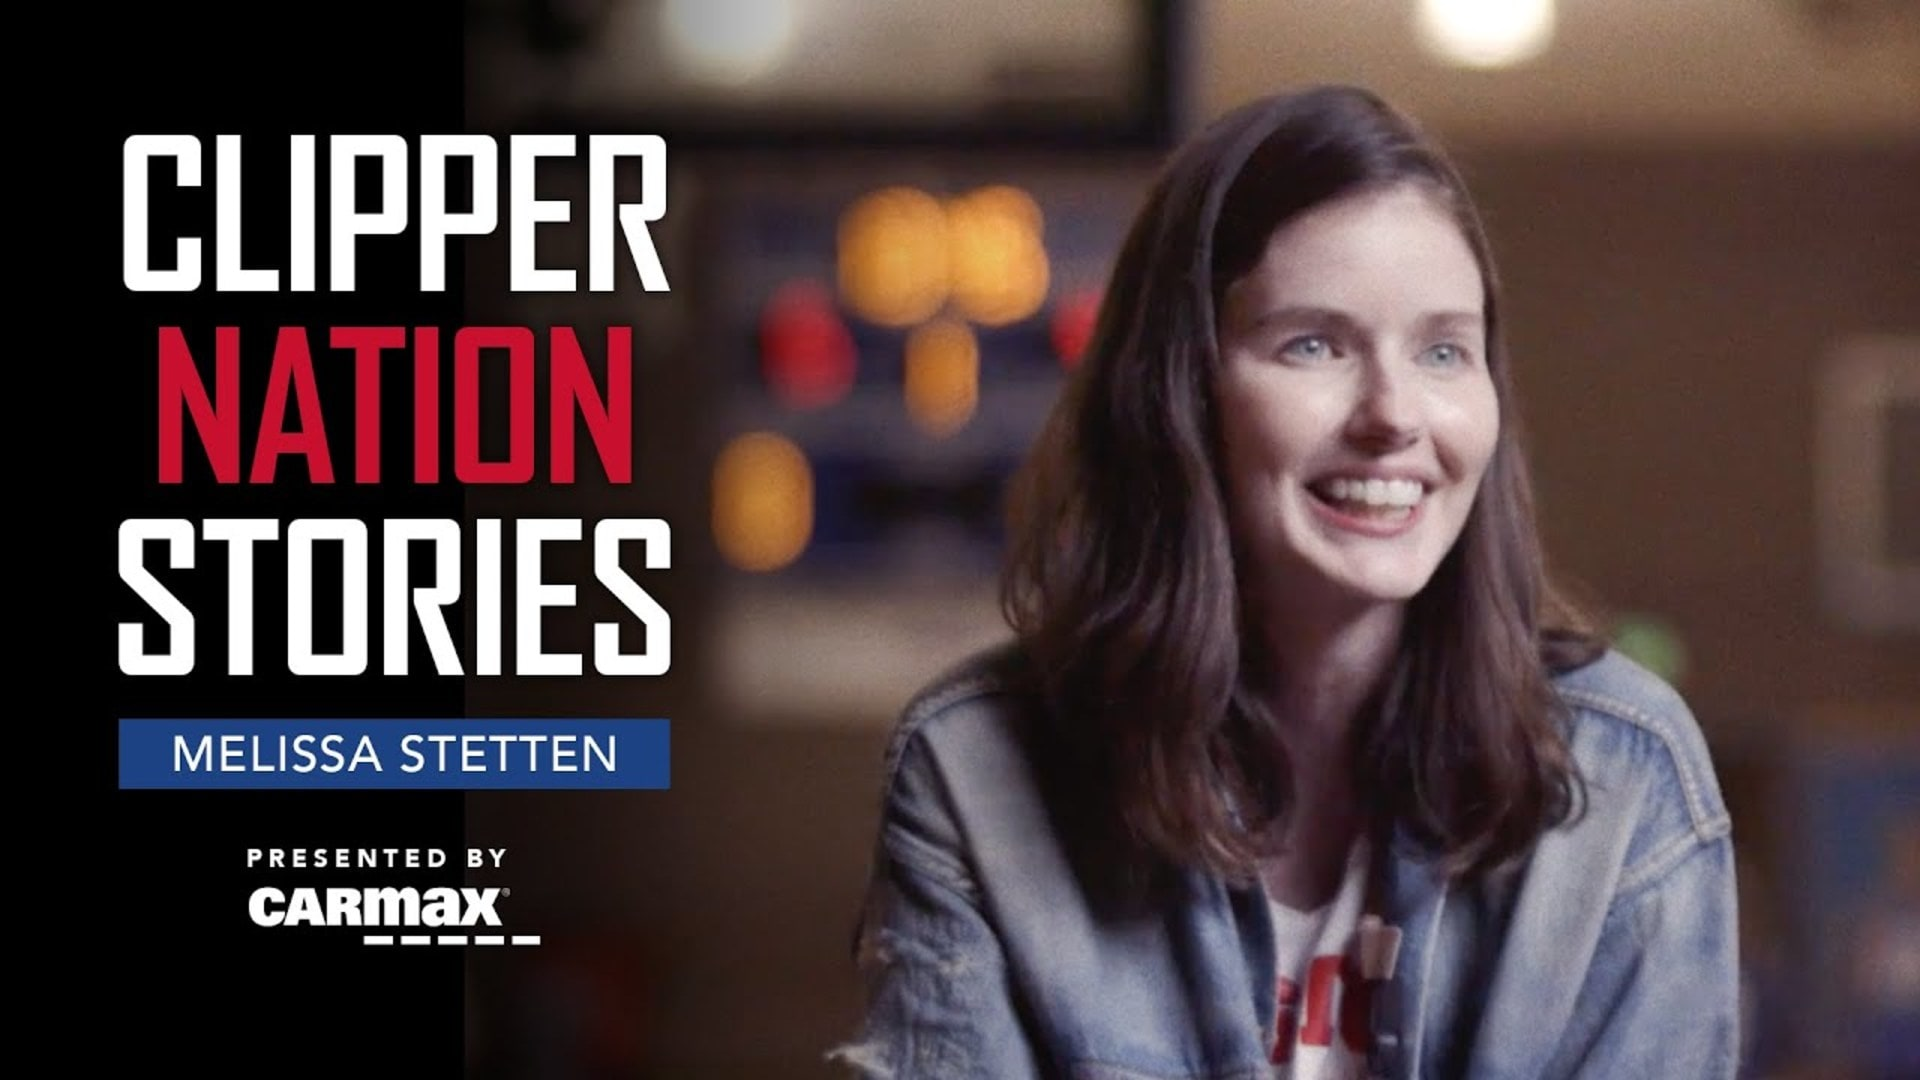 Melissa Stetten Models Her Game After Patrick Beverley | Clipper Nation Stories